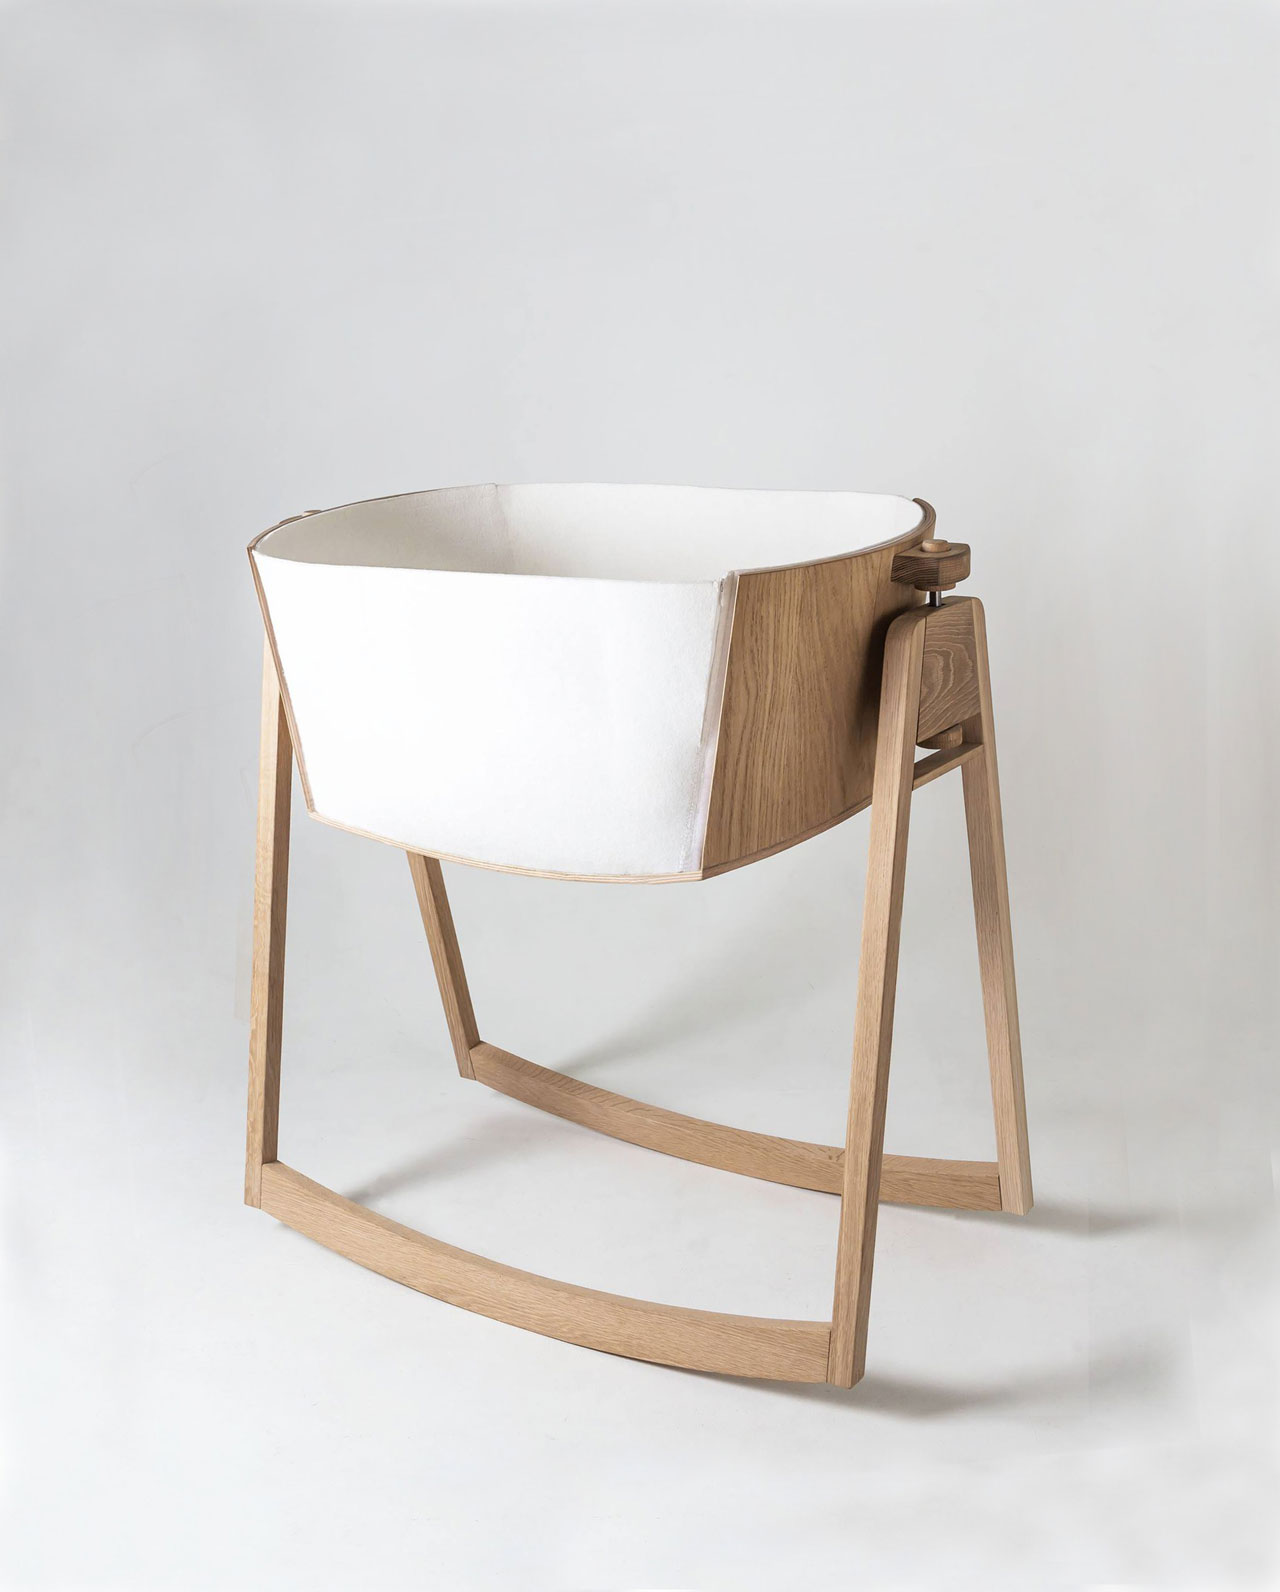 LUNIbaby cradle byAnniken Frich, Erik Harmens & Izelin Tujunen.Presented at the Greenhouse of SFF2016 by the students ofProduct design at Oslo and Akershus University College of applied sciences.